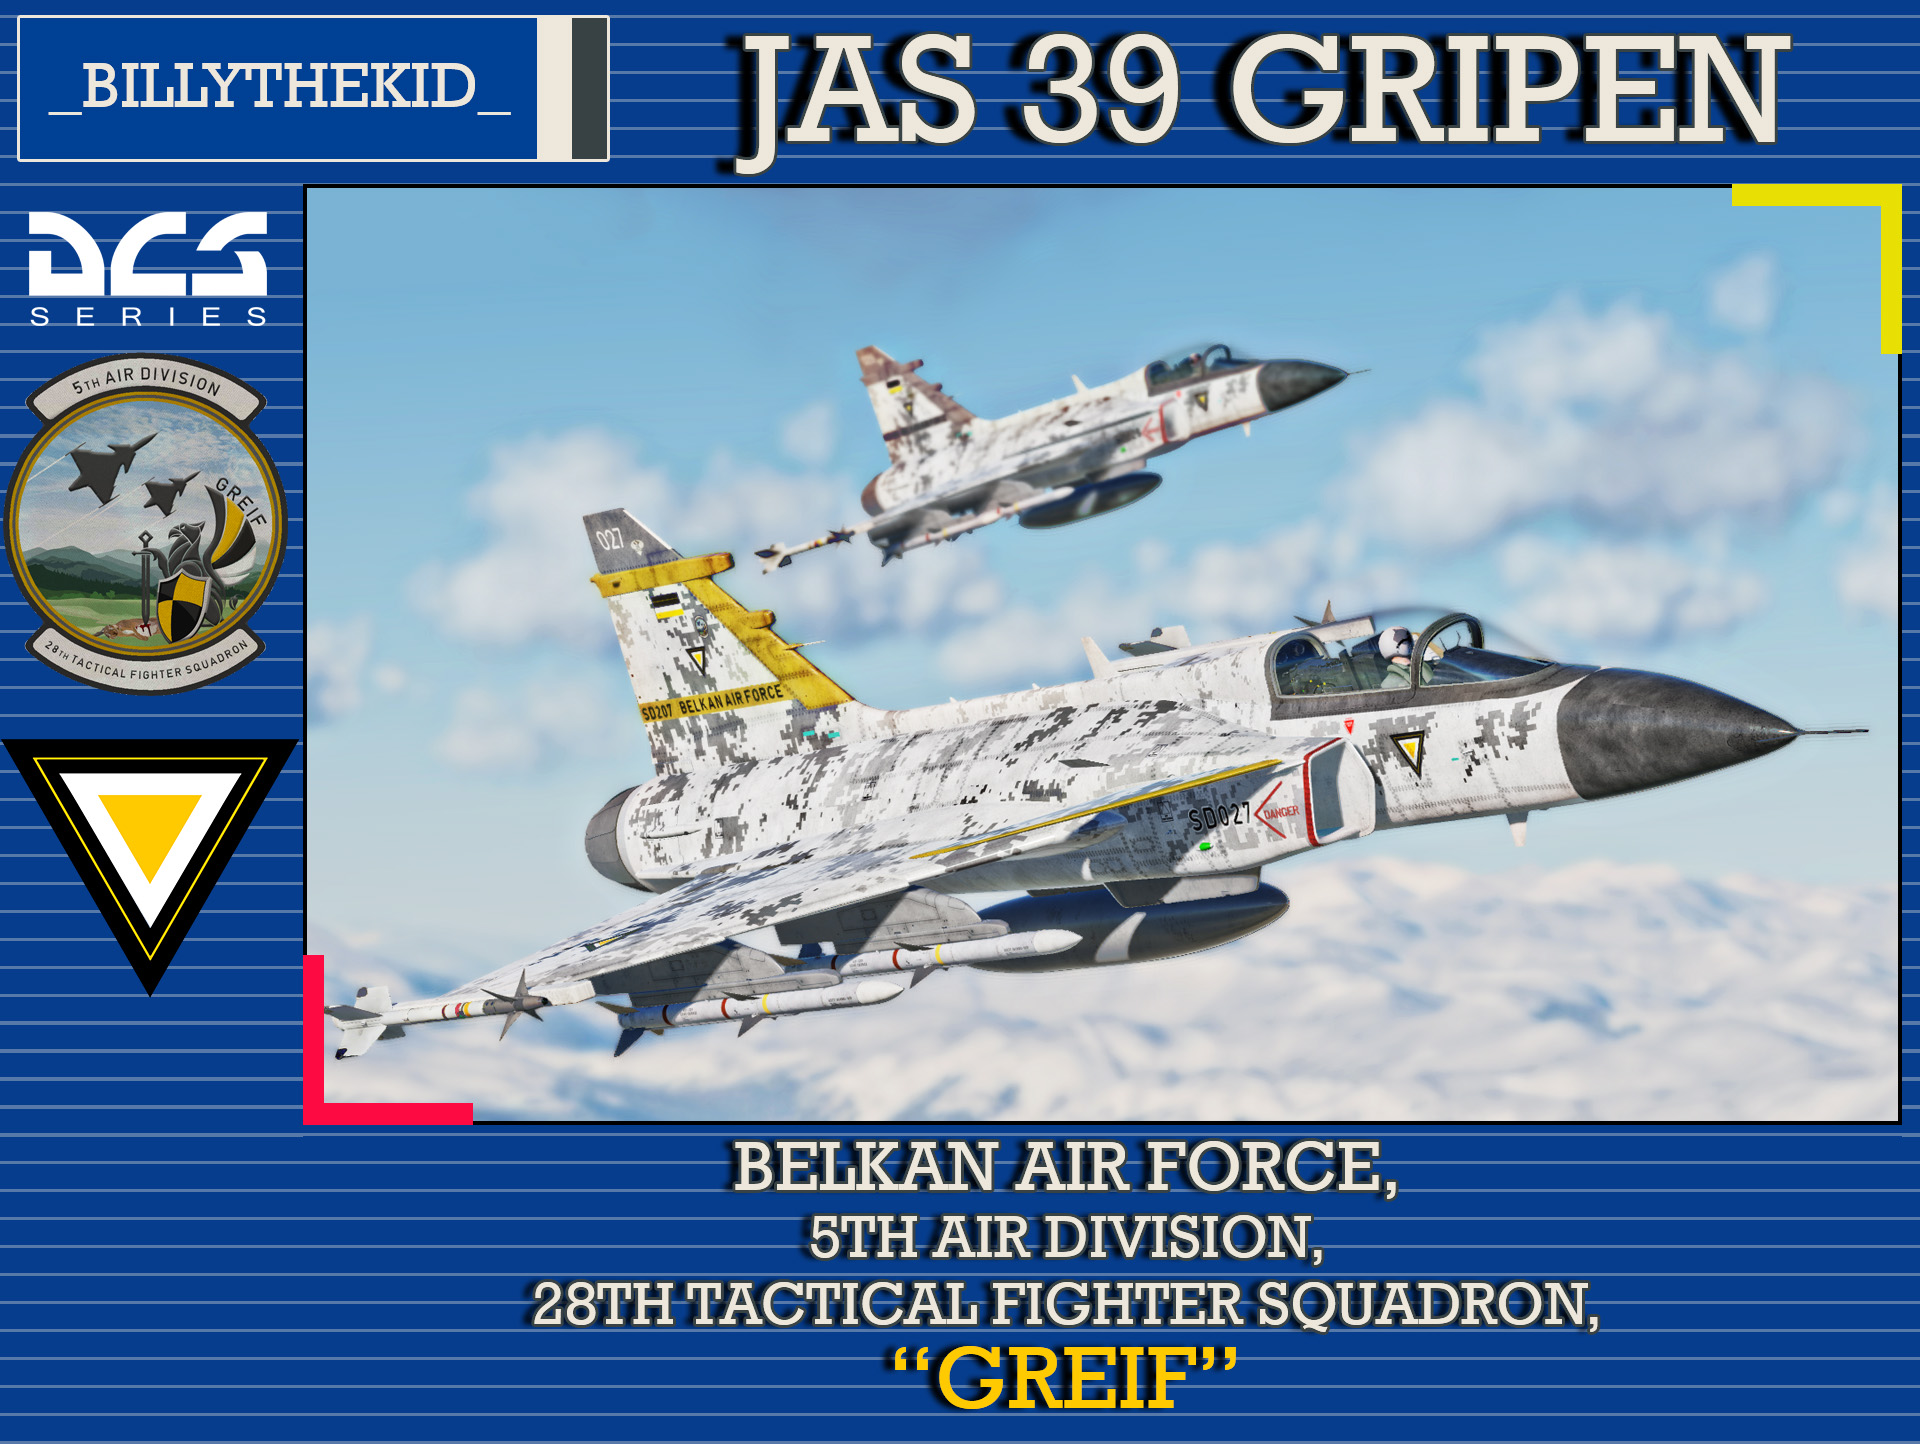 "Ace Combat - Belkan Air Force 5th Air Division, 28th Tactical Fighter Squadron ""Greif"" JAS 39 Gripen"